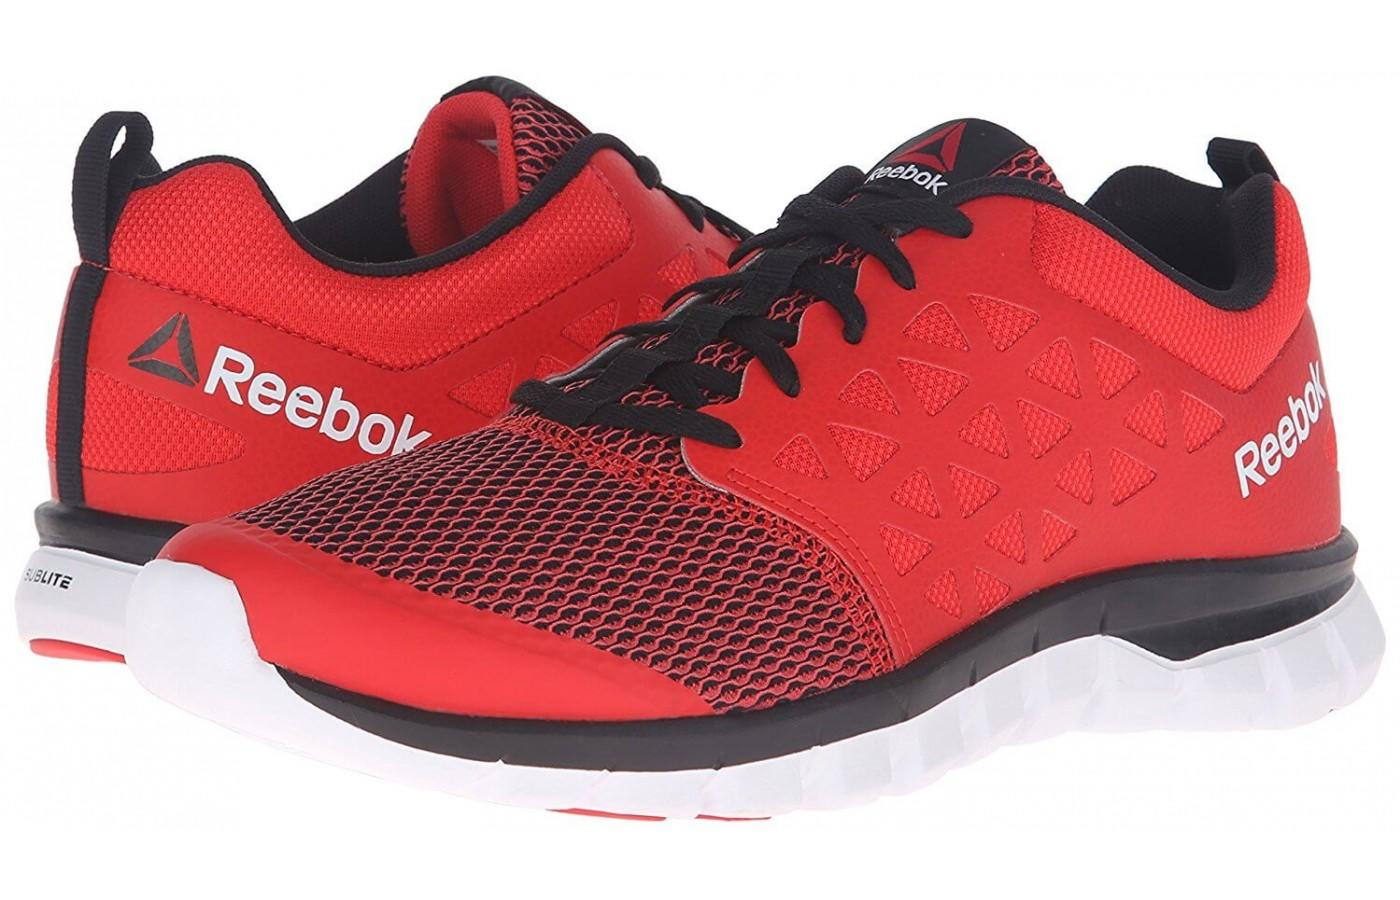 a pair of Reebok Sublite XT Cushion 2.0's are stylish but affordable